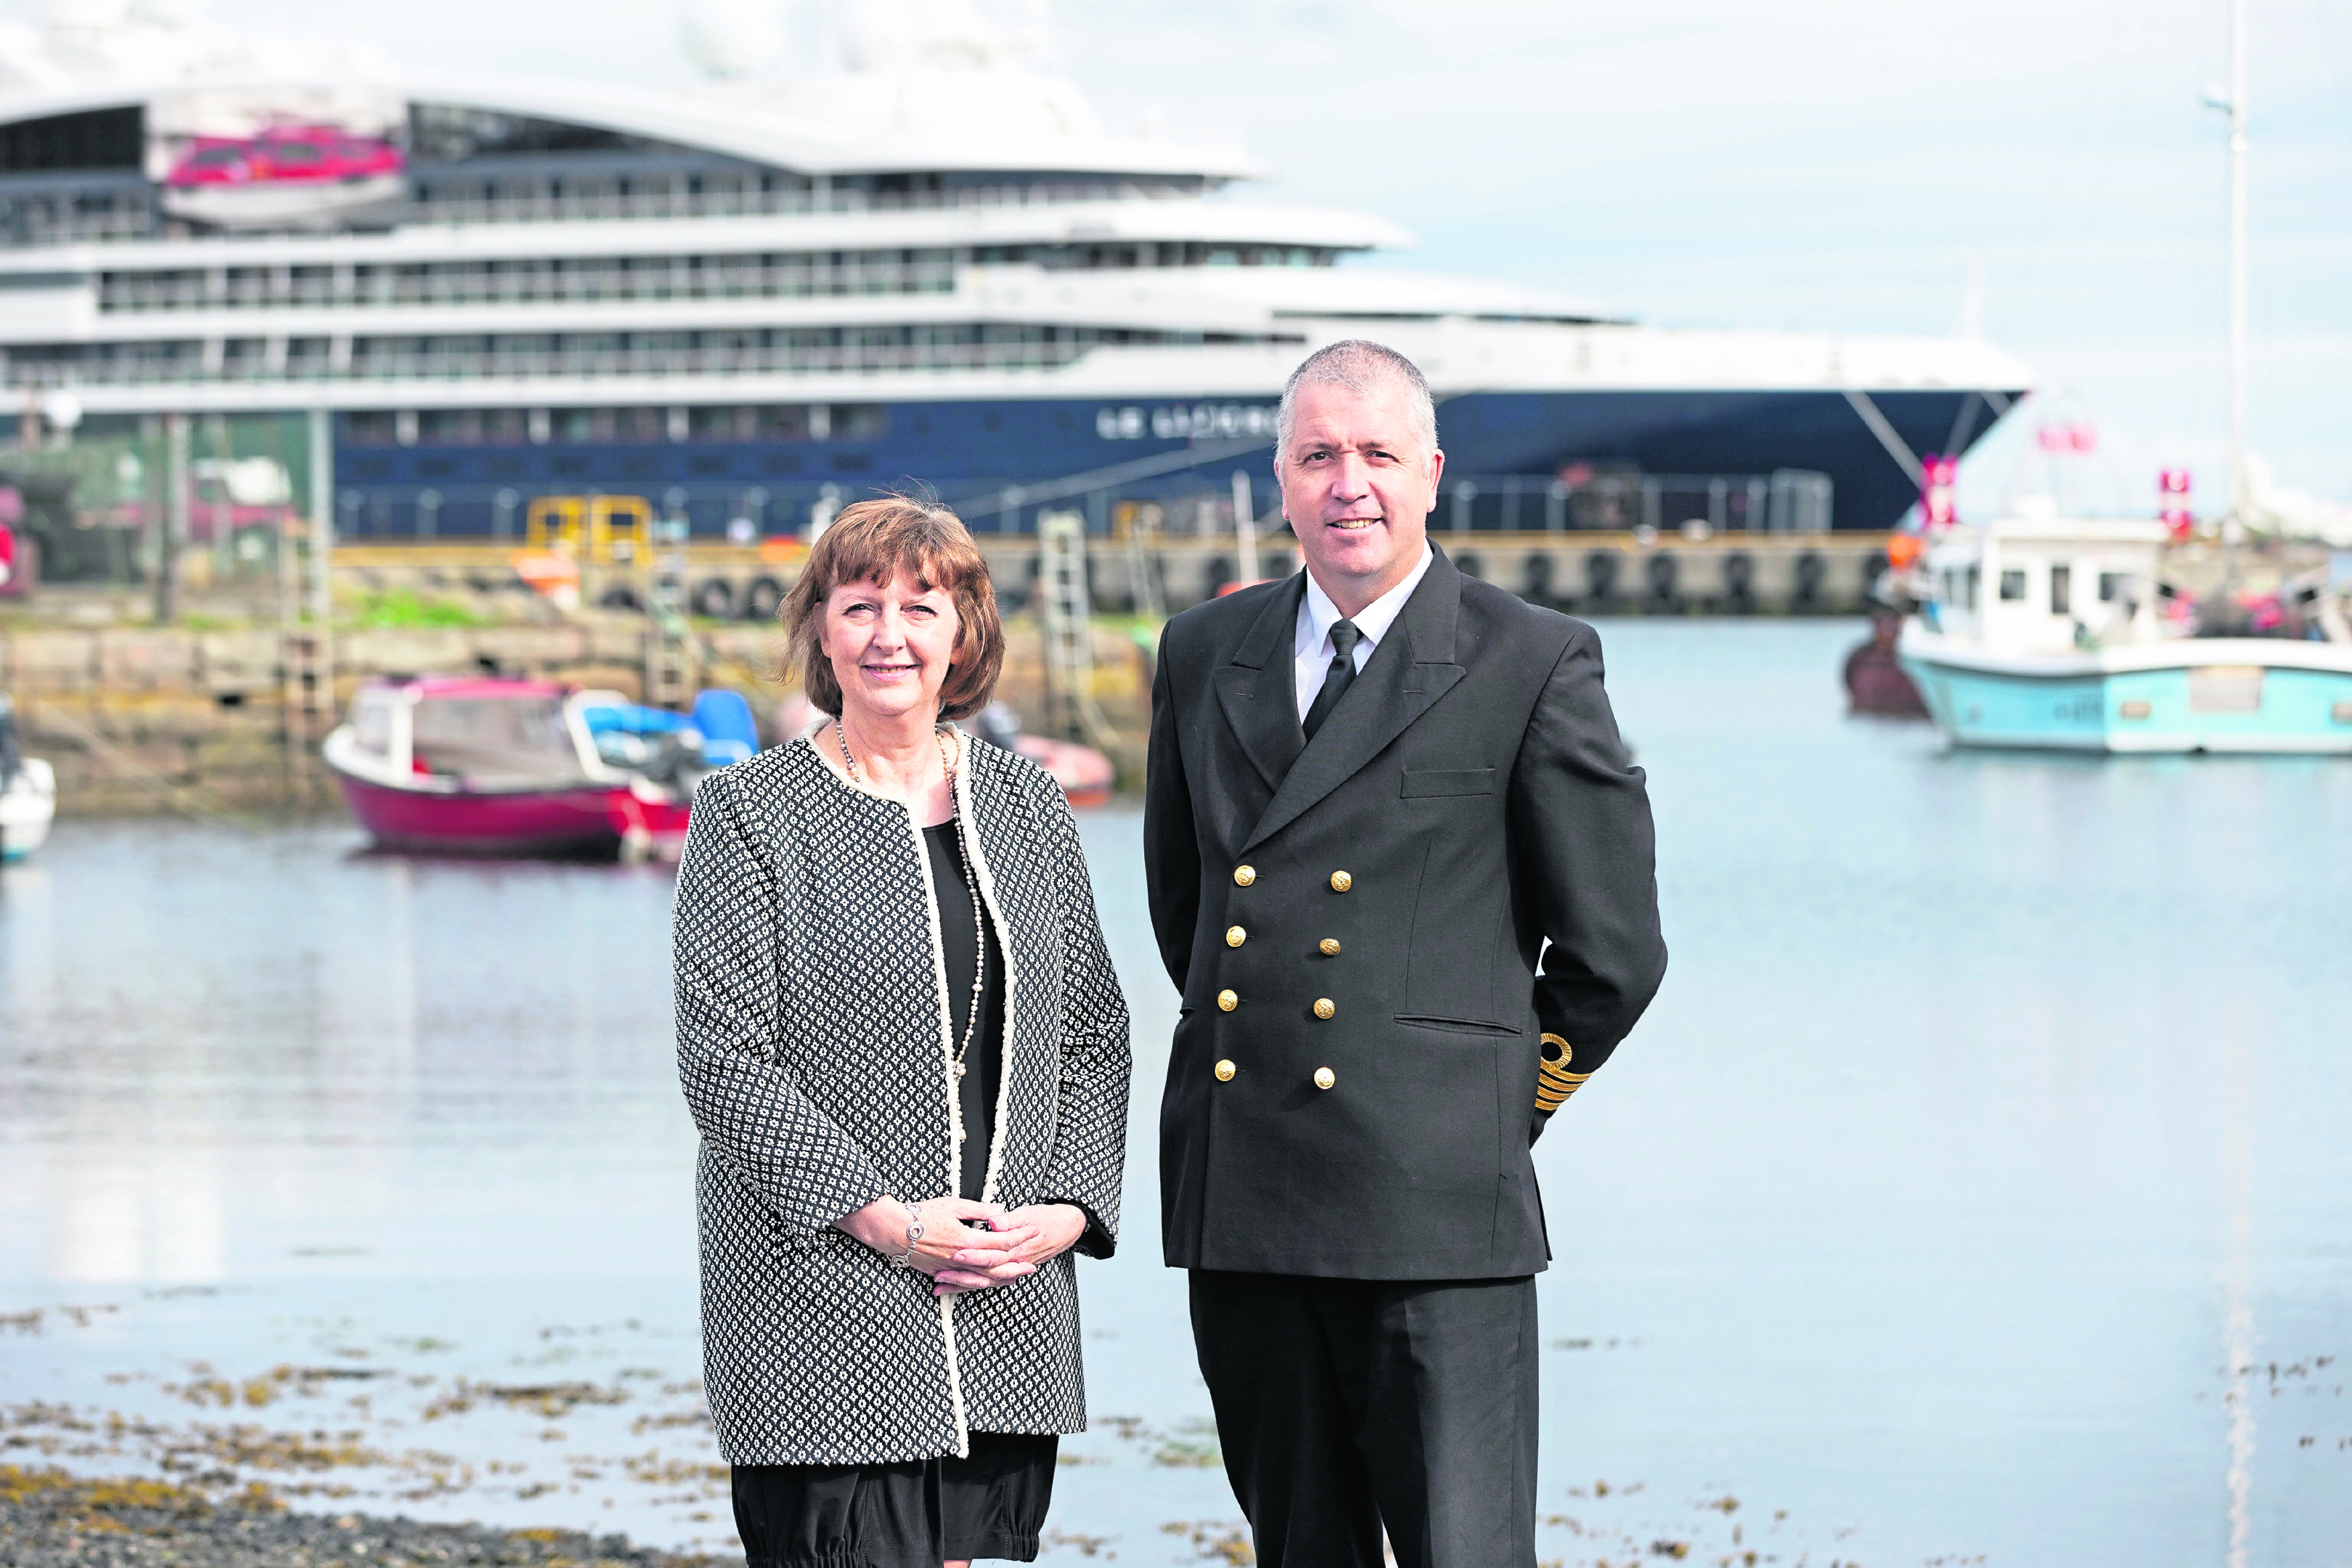 Lerwick Port Authority's Sandra Laurenson,   and her successor-designate as Chief Executive, Captain Calum Grains, with the cruise ship, Le Laperouse, in the background